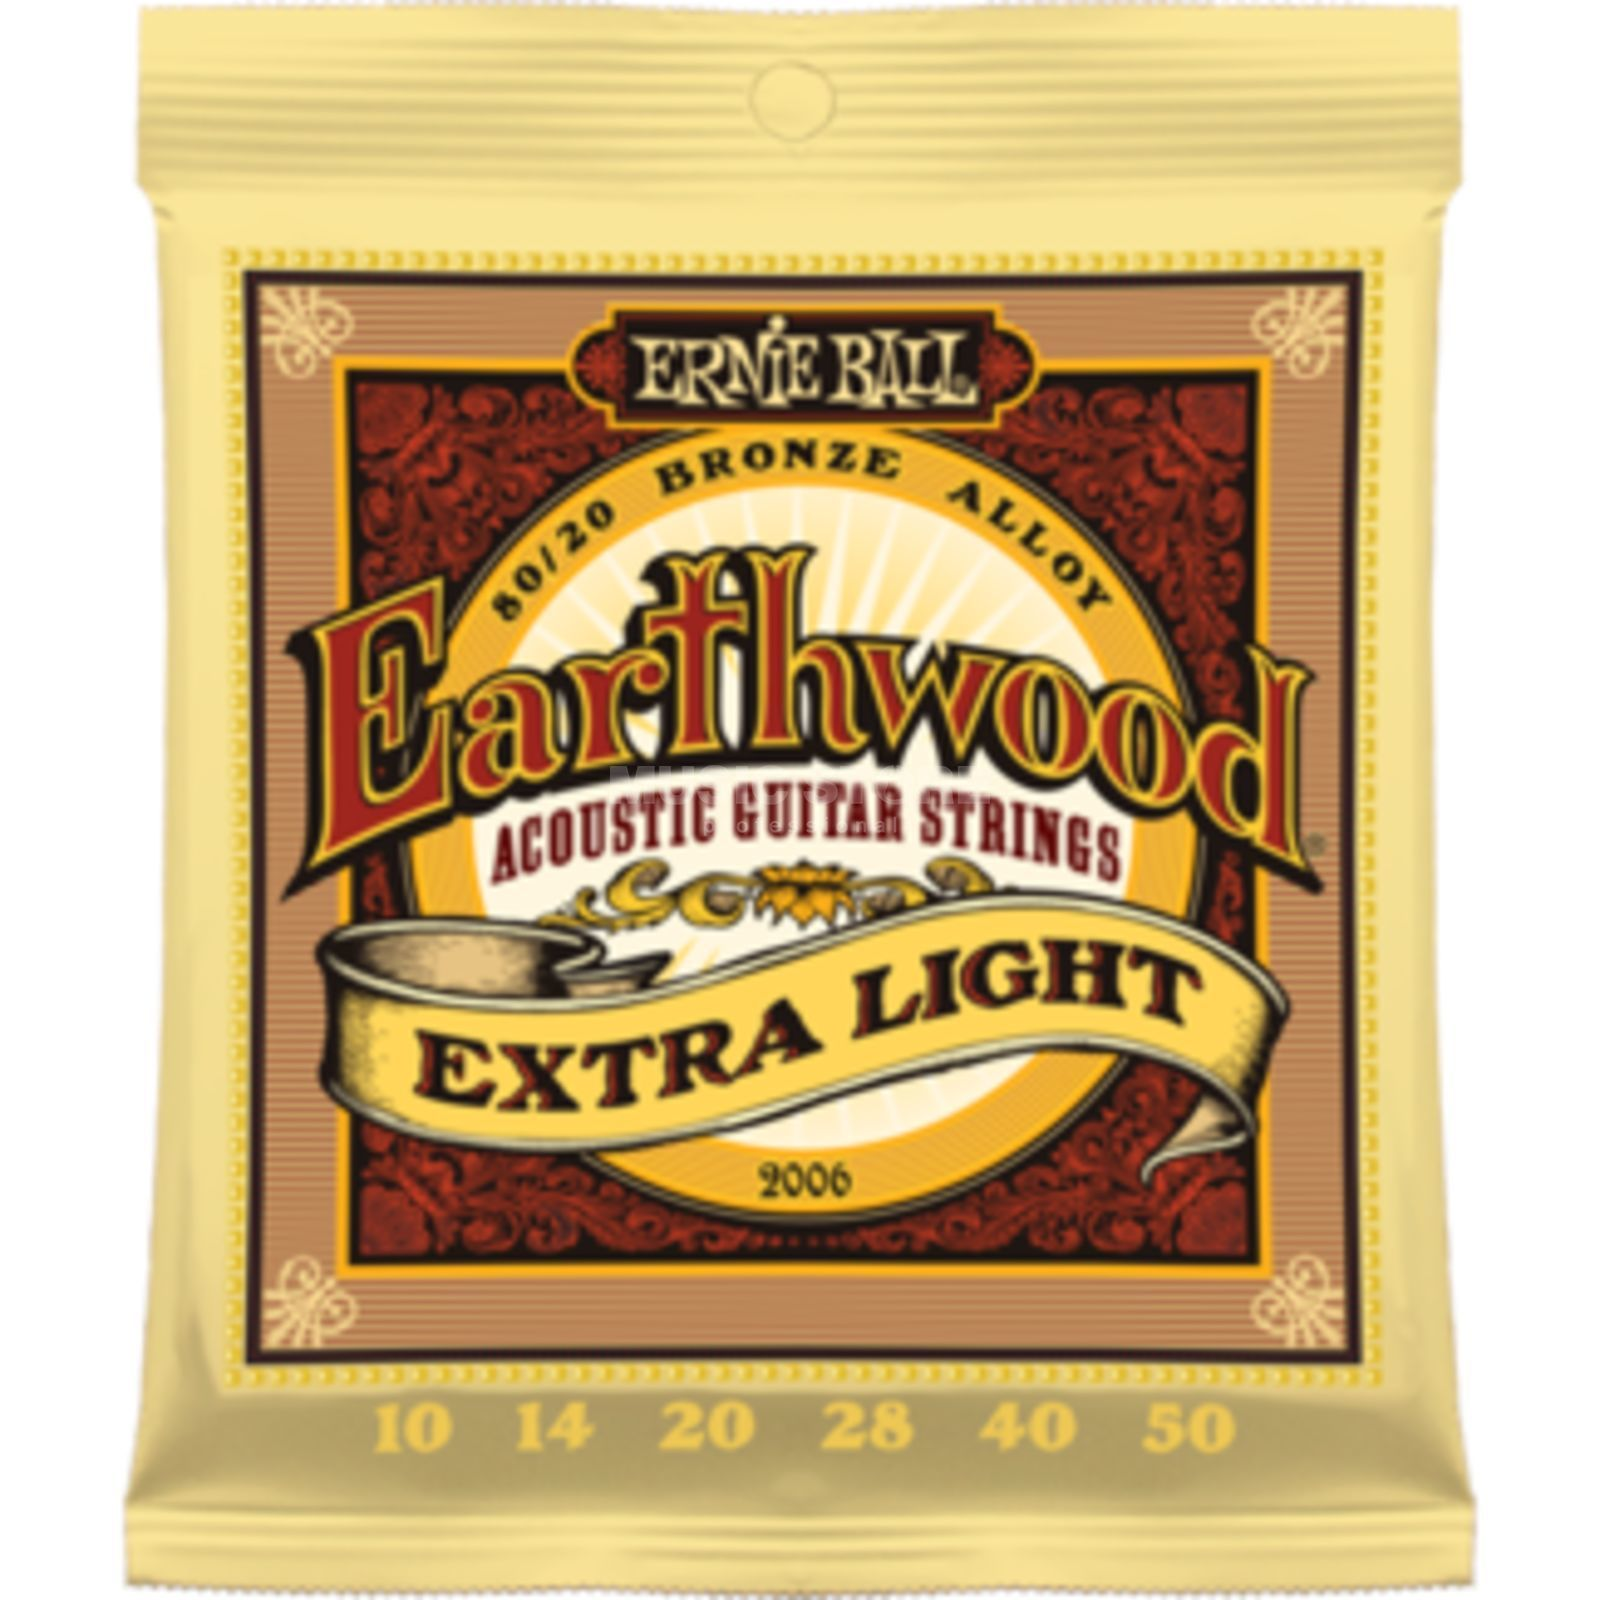 ernie-ball-a-guit-strings-earthwood-10-50-bronze-eb2006_1_GIT0027972-000.jpg